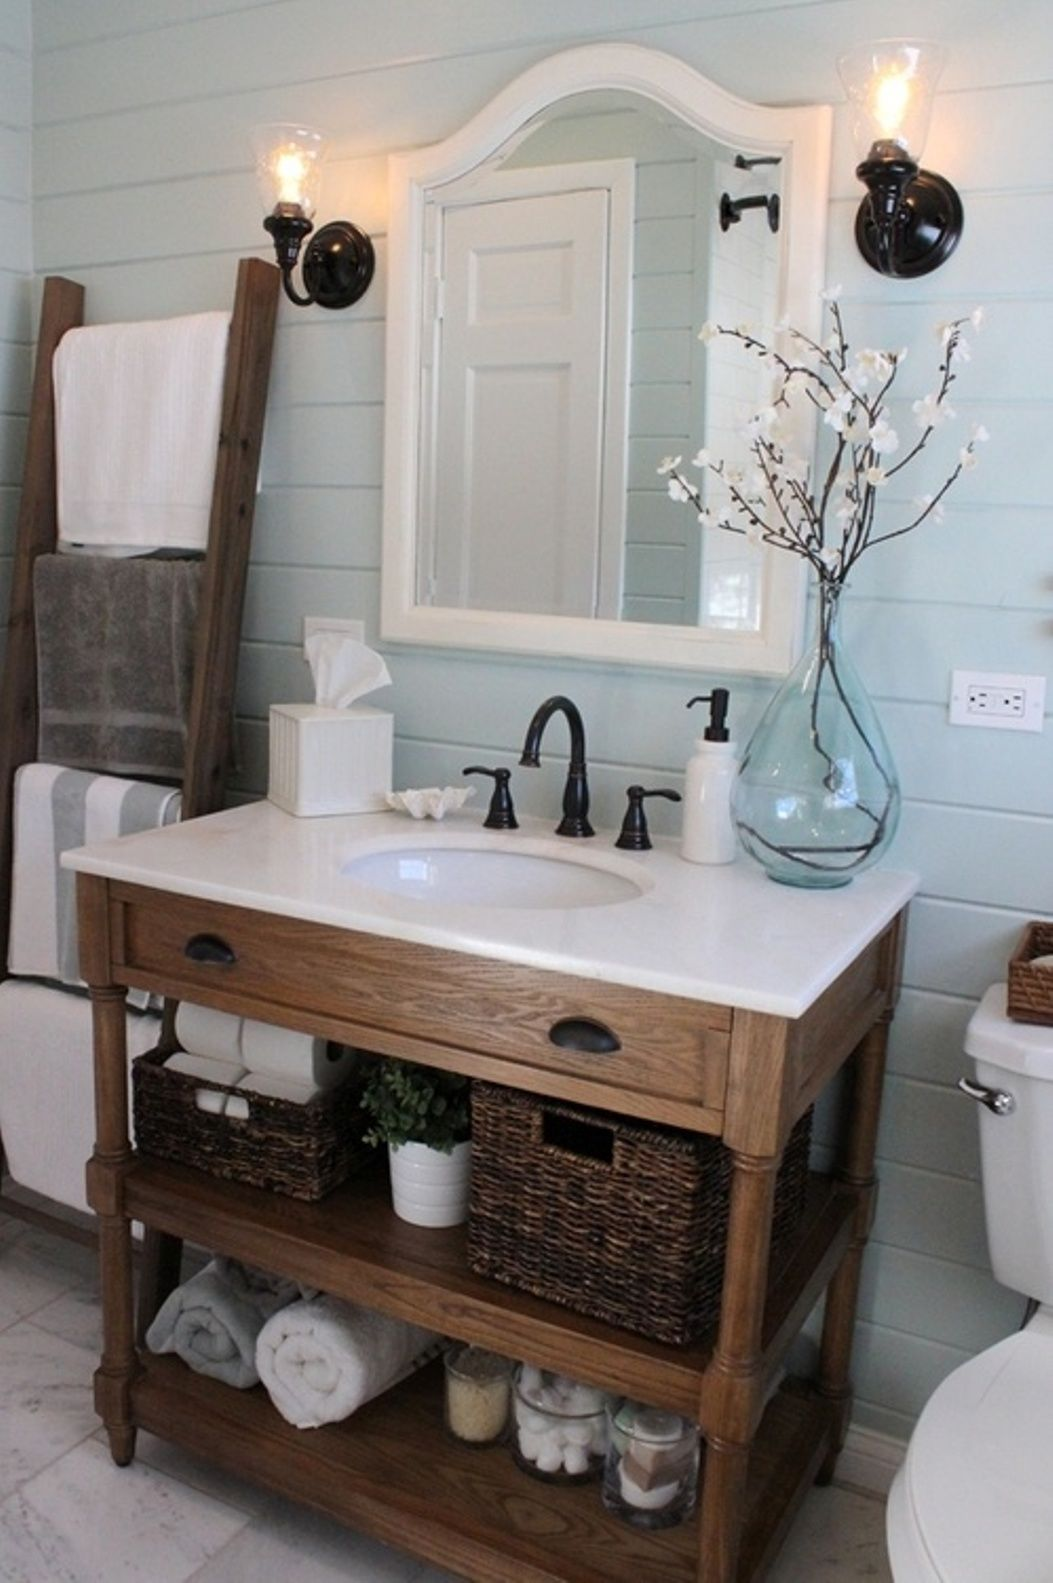 17 inspiring rustic bathroom decor ideas for cozy home for Bathroom mural ideas